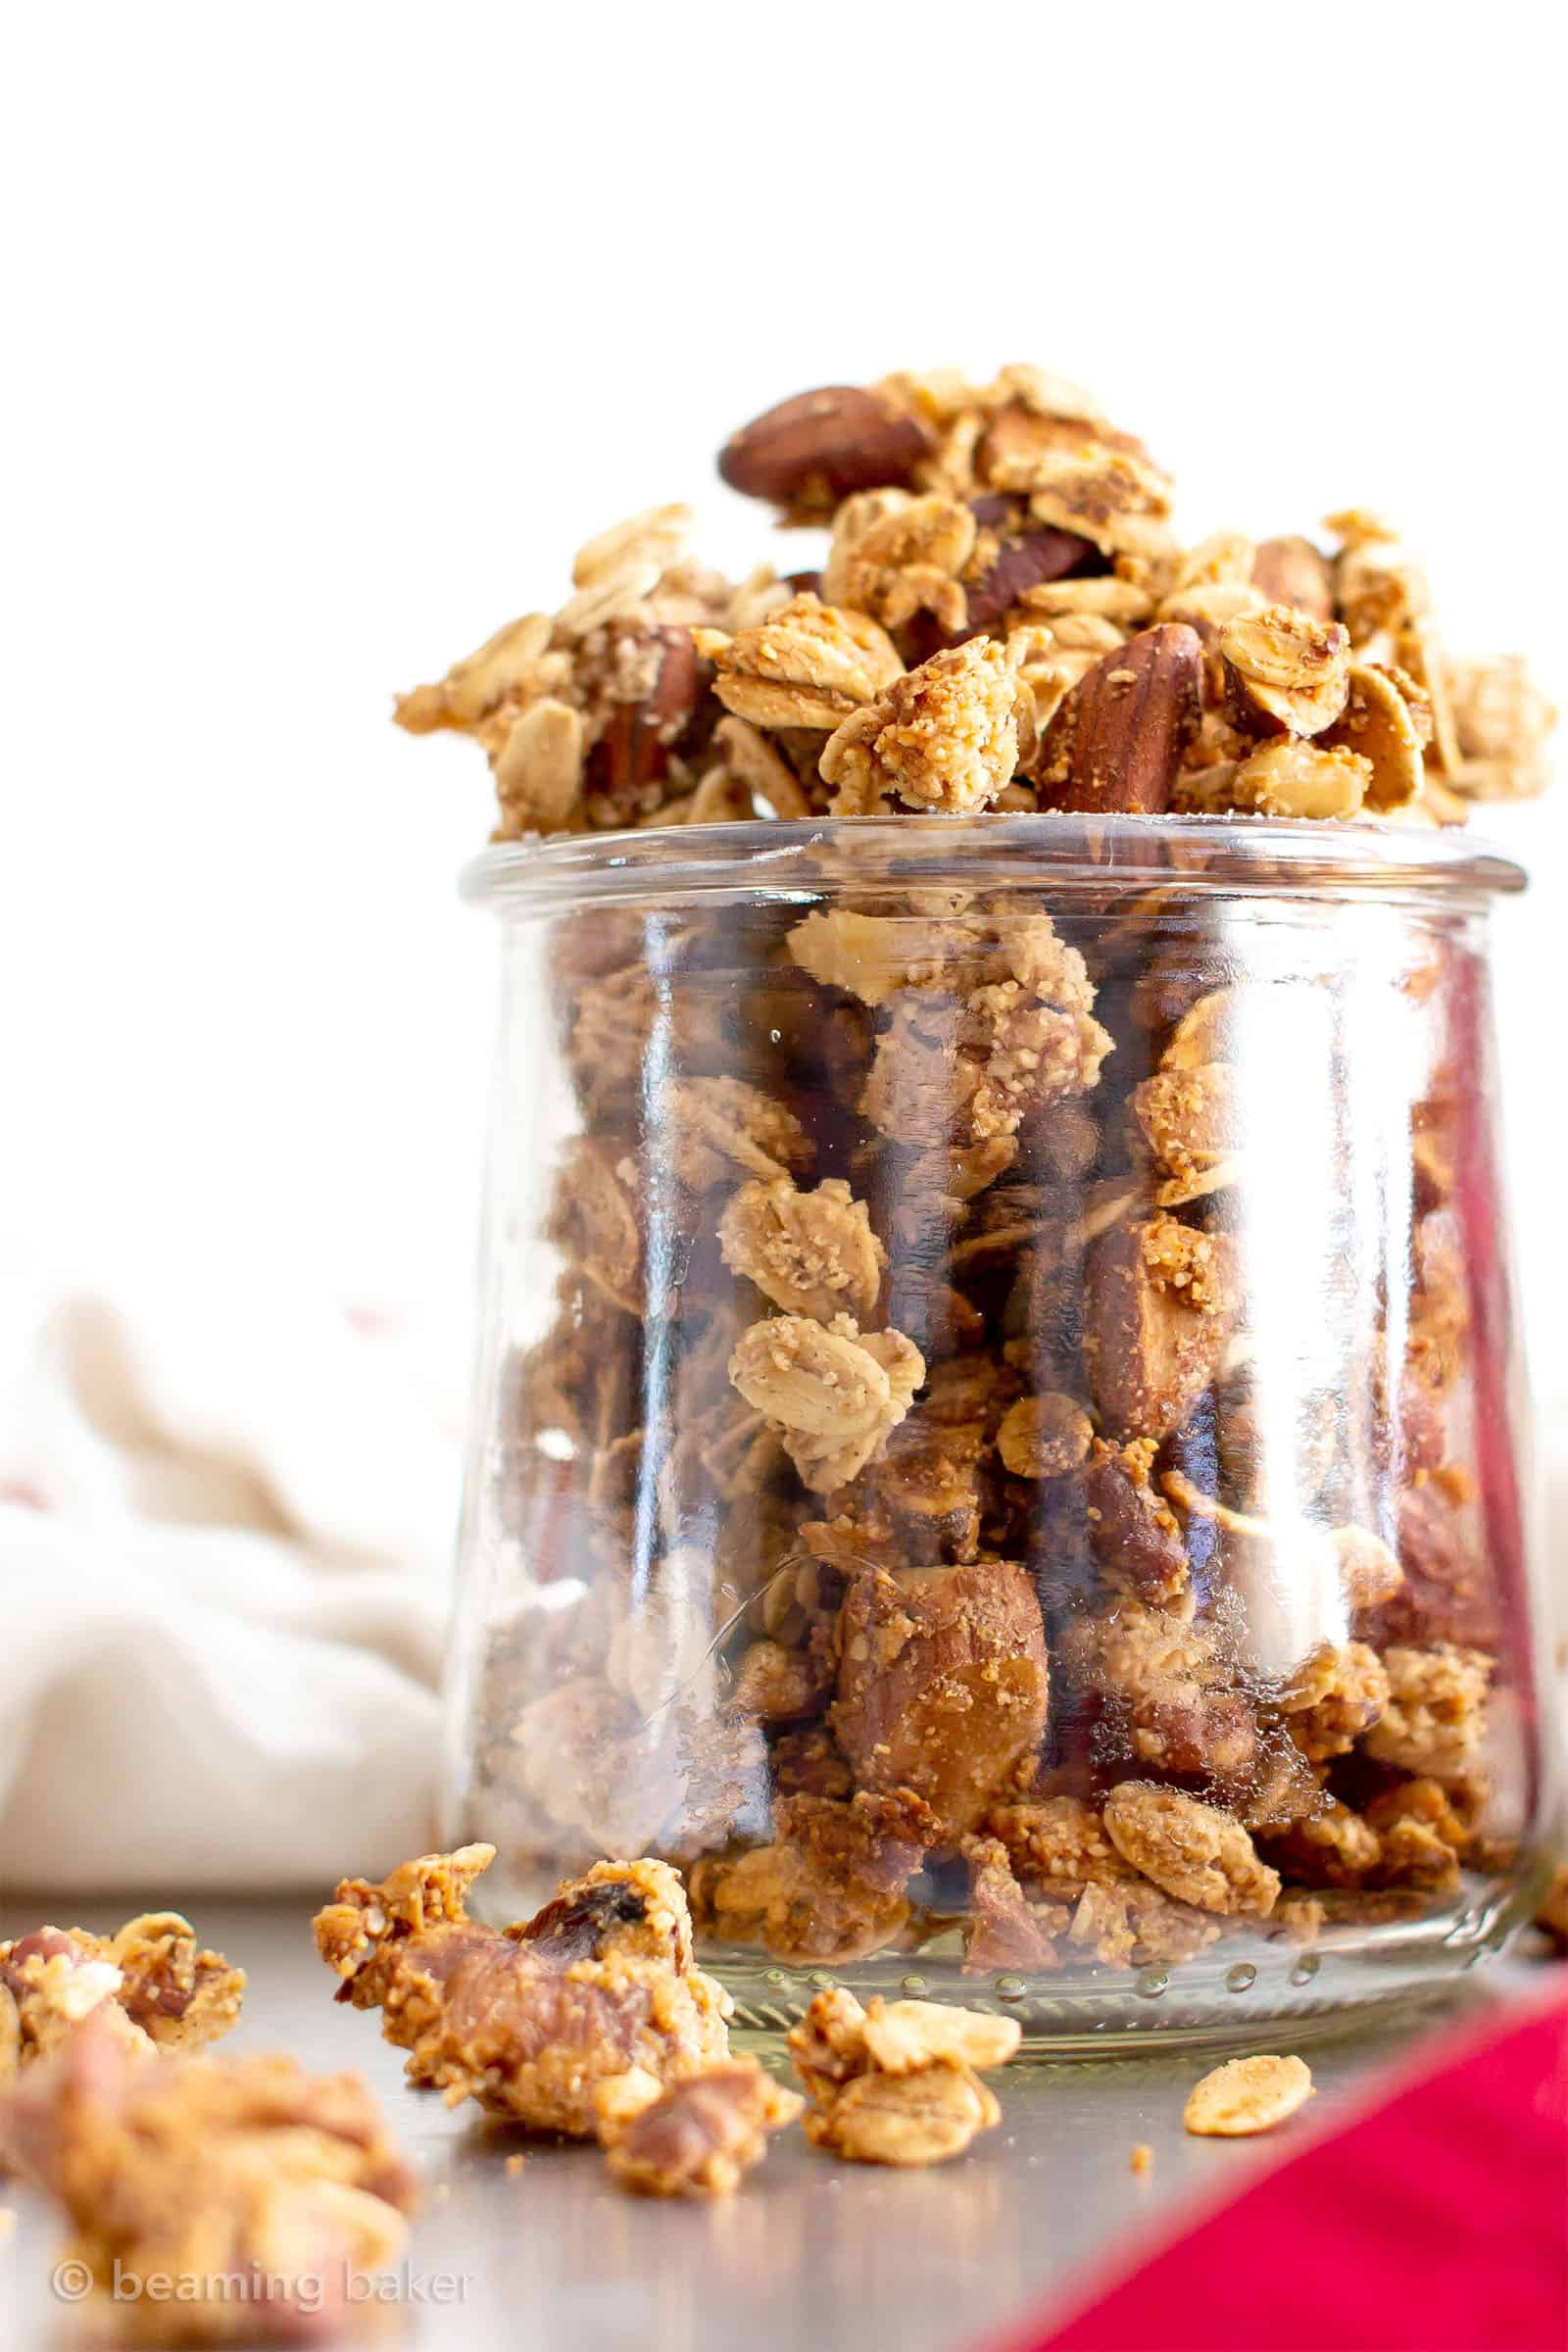 Gluten Free Chai Spice Granola Recipe (V, GF): a super easy, 1-bowl recipe for crunchy granola bursting with your favorite fall spices and nuts! Made with healthy ingredients. #Vegan #BeamingBaker #GlutenFree #VeganGlutenFree #Granola #HomemadeGranola #ChaiSpice #HealthySnacks | Recipe at BeamingBaker.com